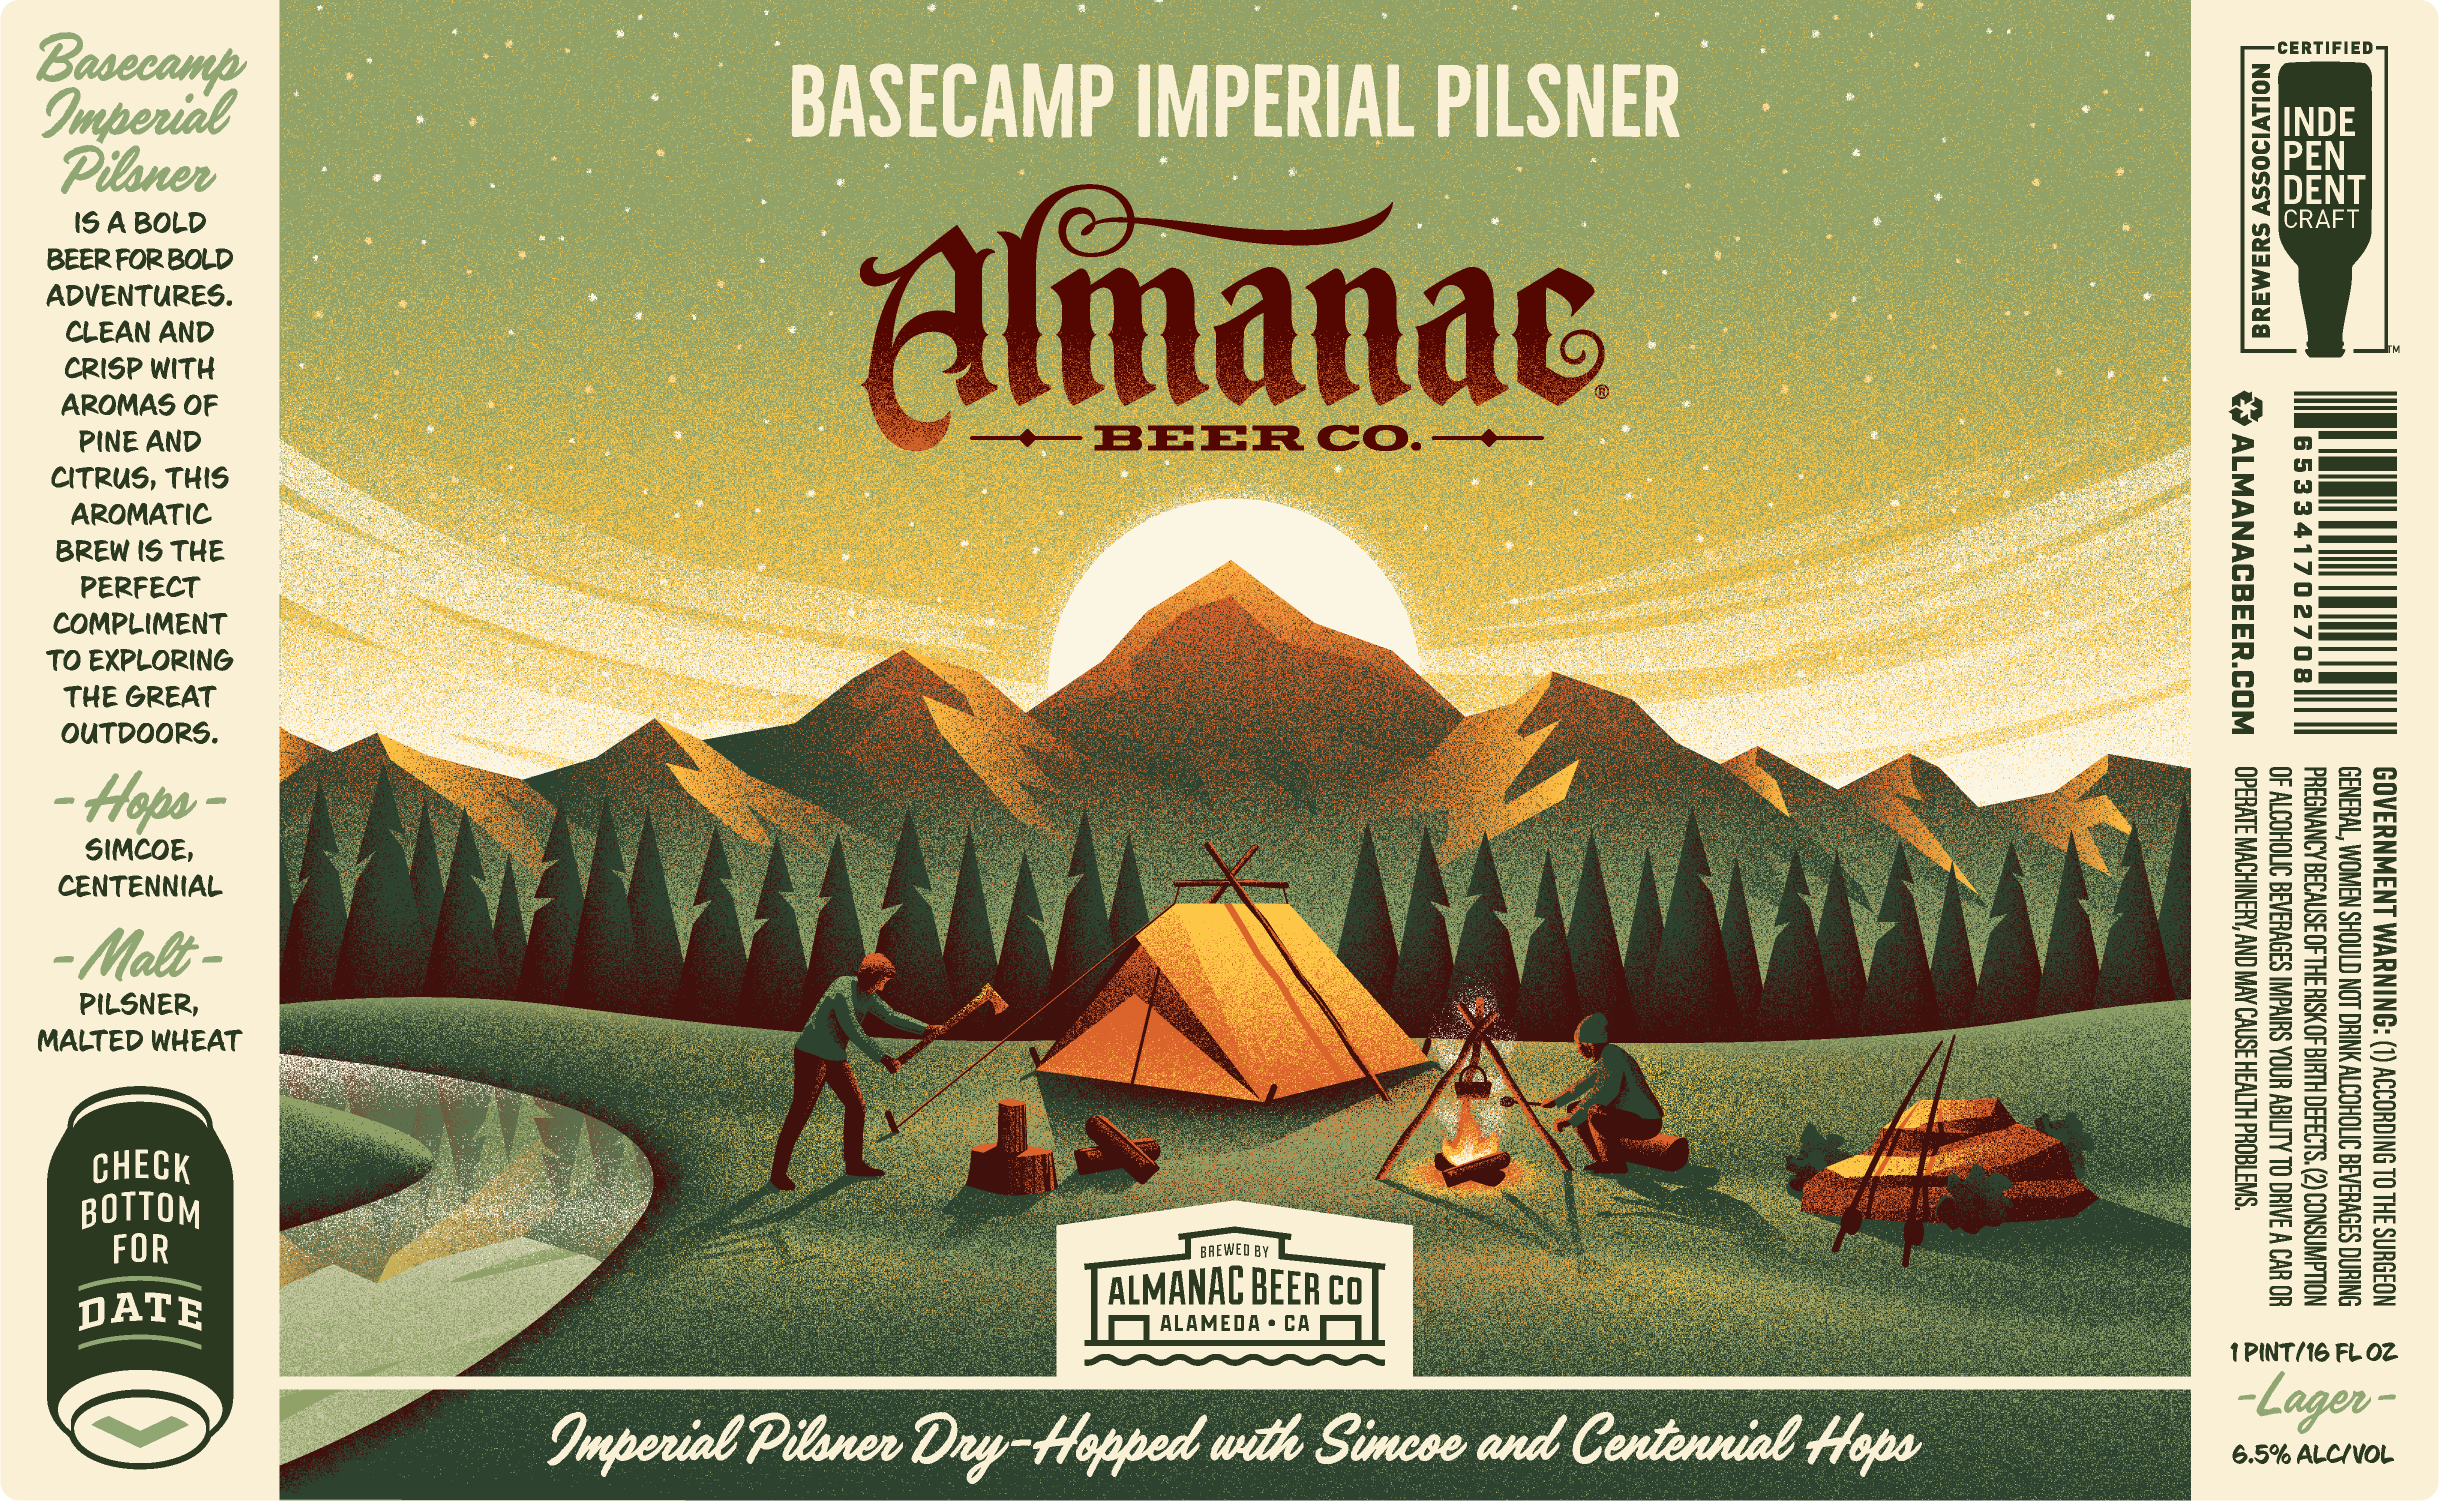 Basecamp Imperial Pilsner label by DKNG